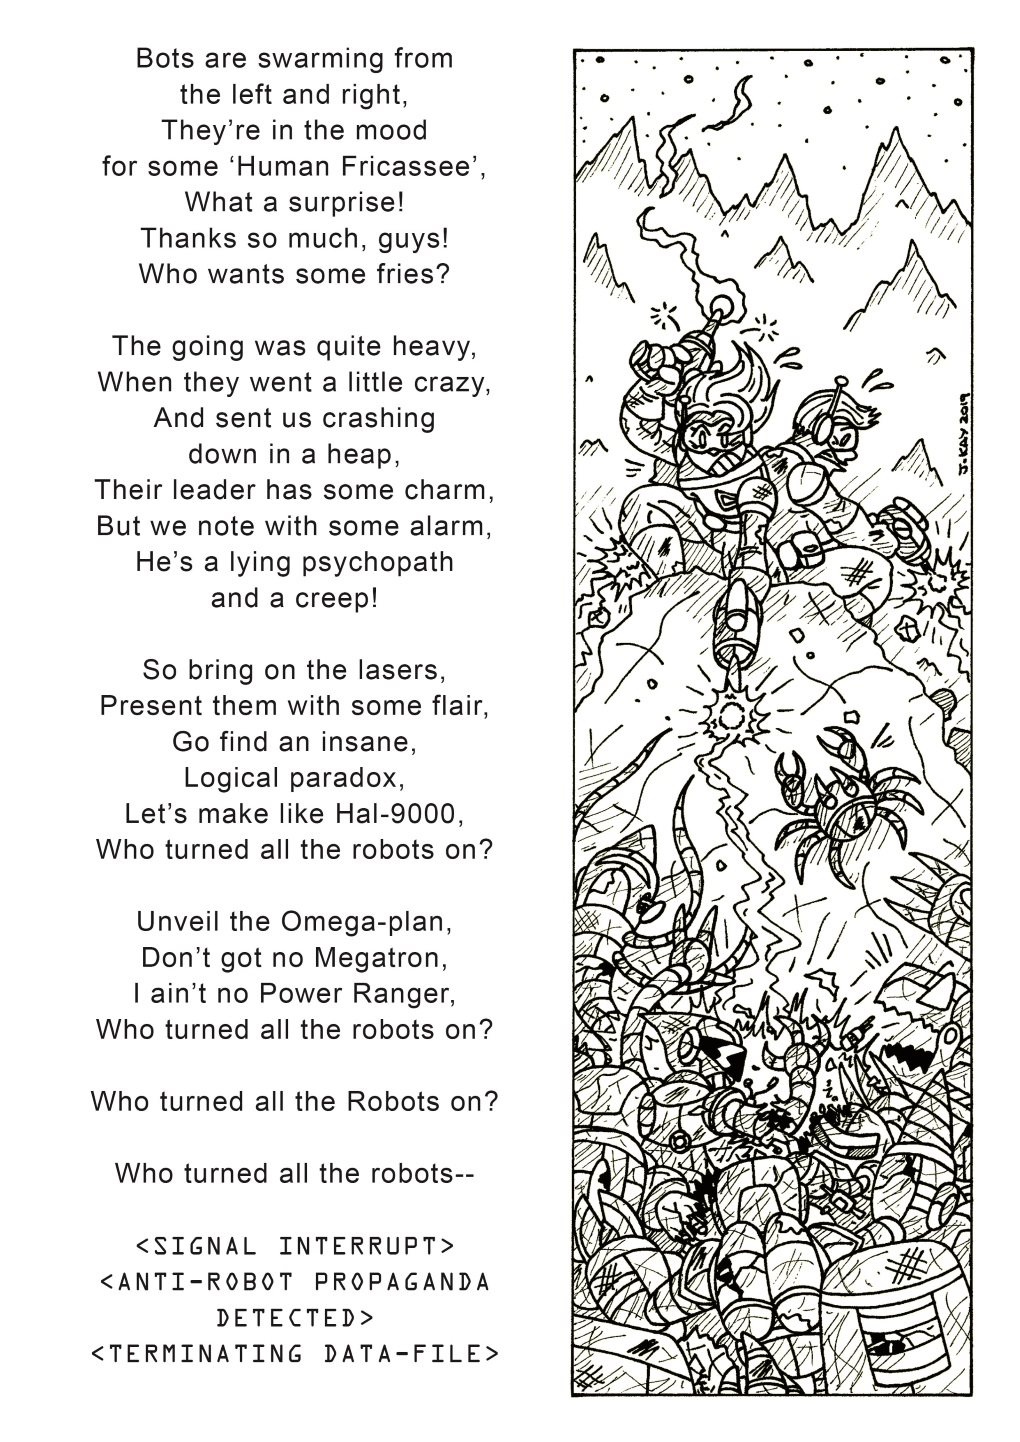 Filksong fiesta: 'Who turned all the robots on?' (2 of 2)